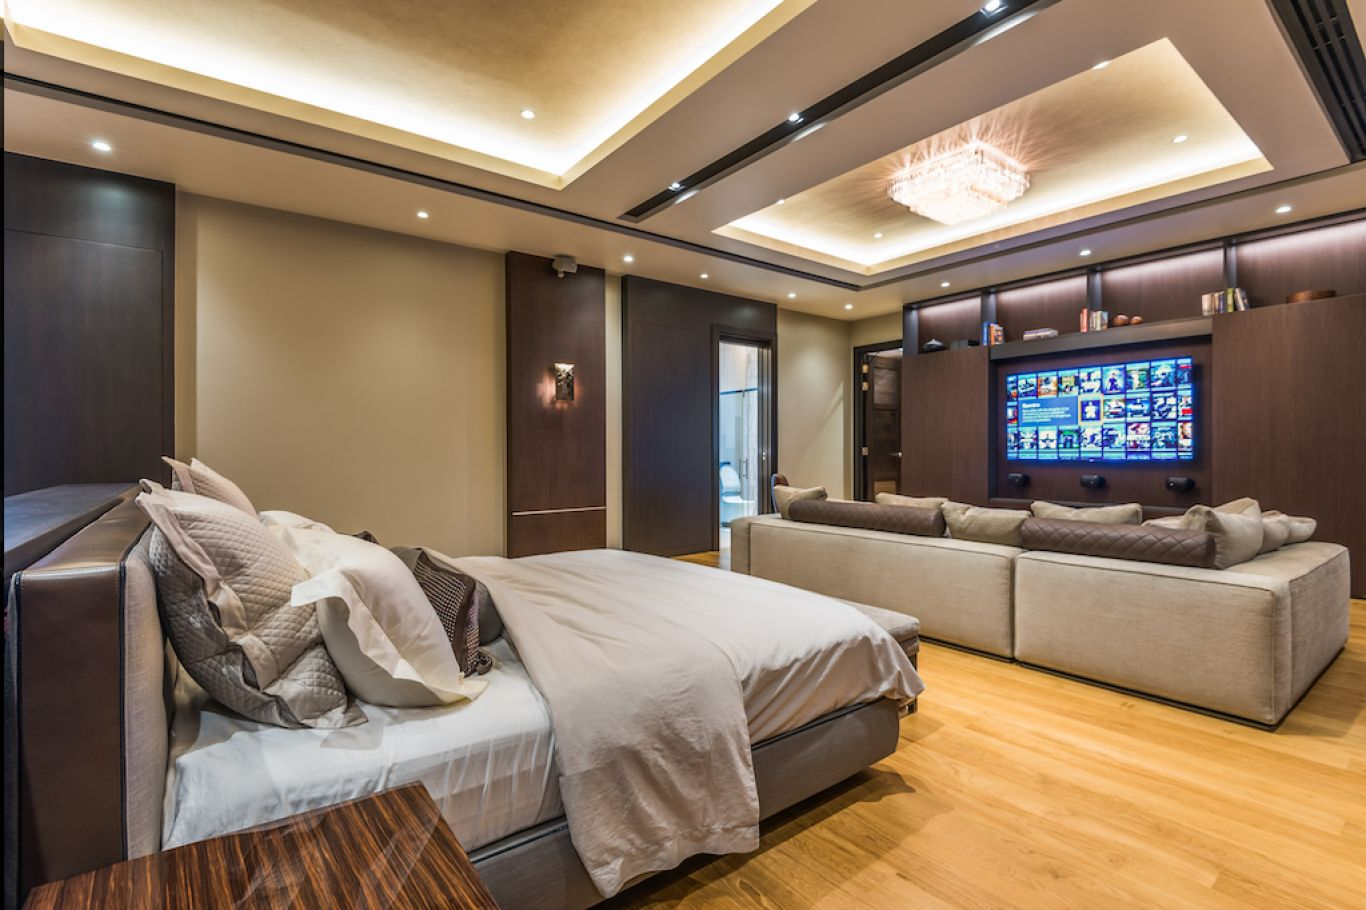 Intergrated bedroom automation